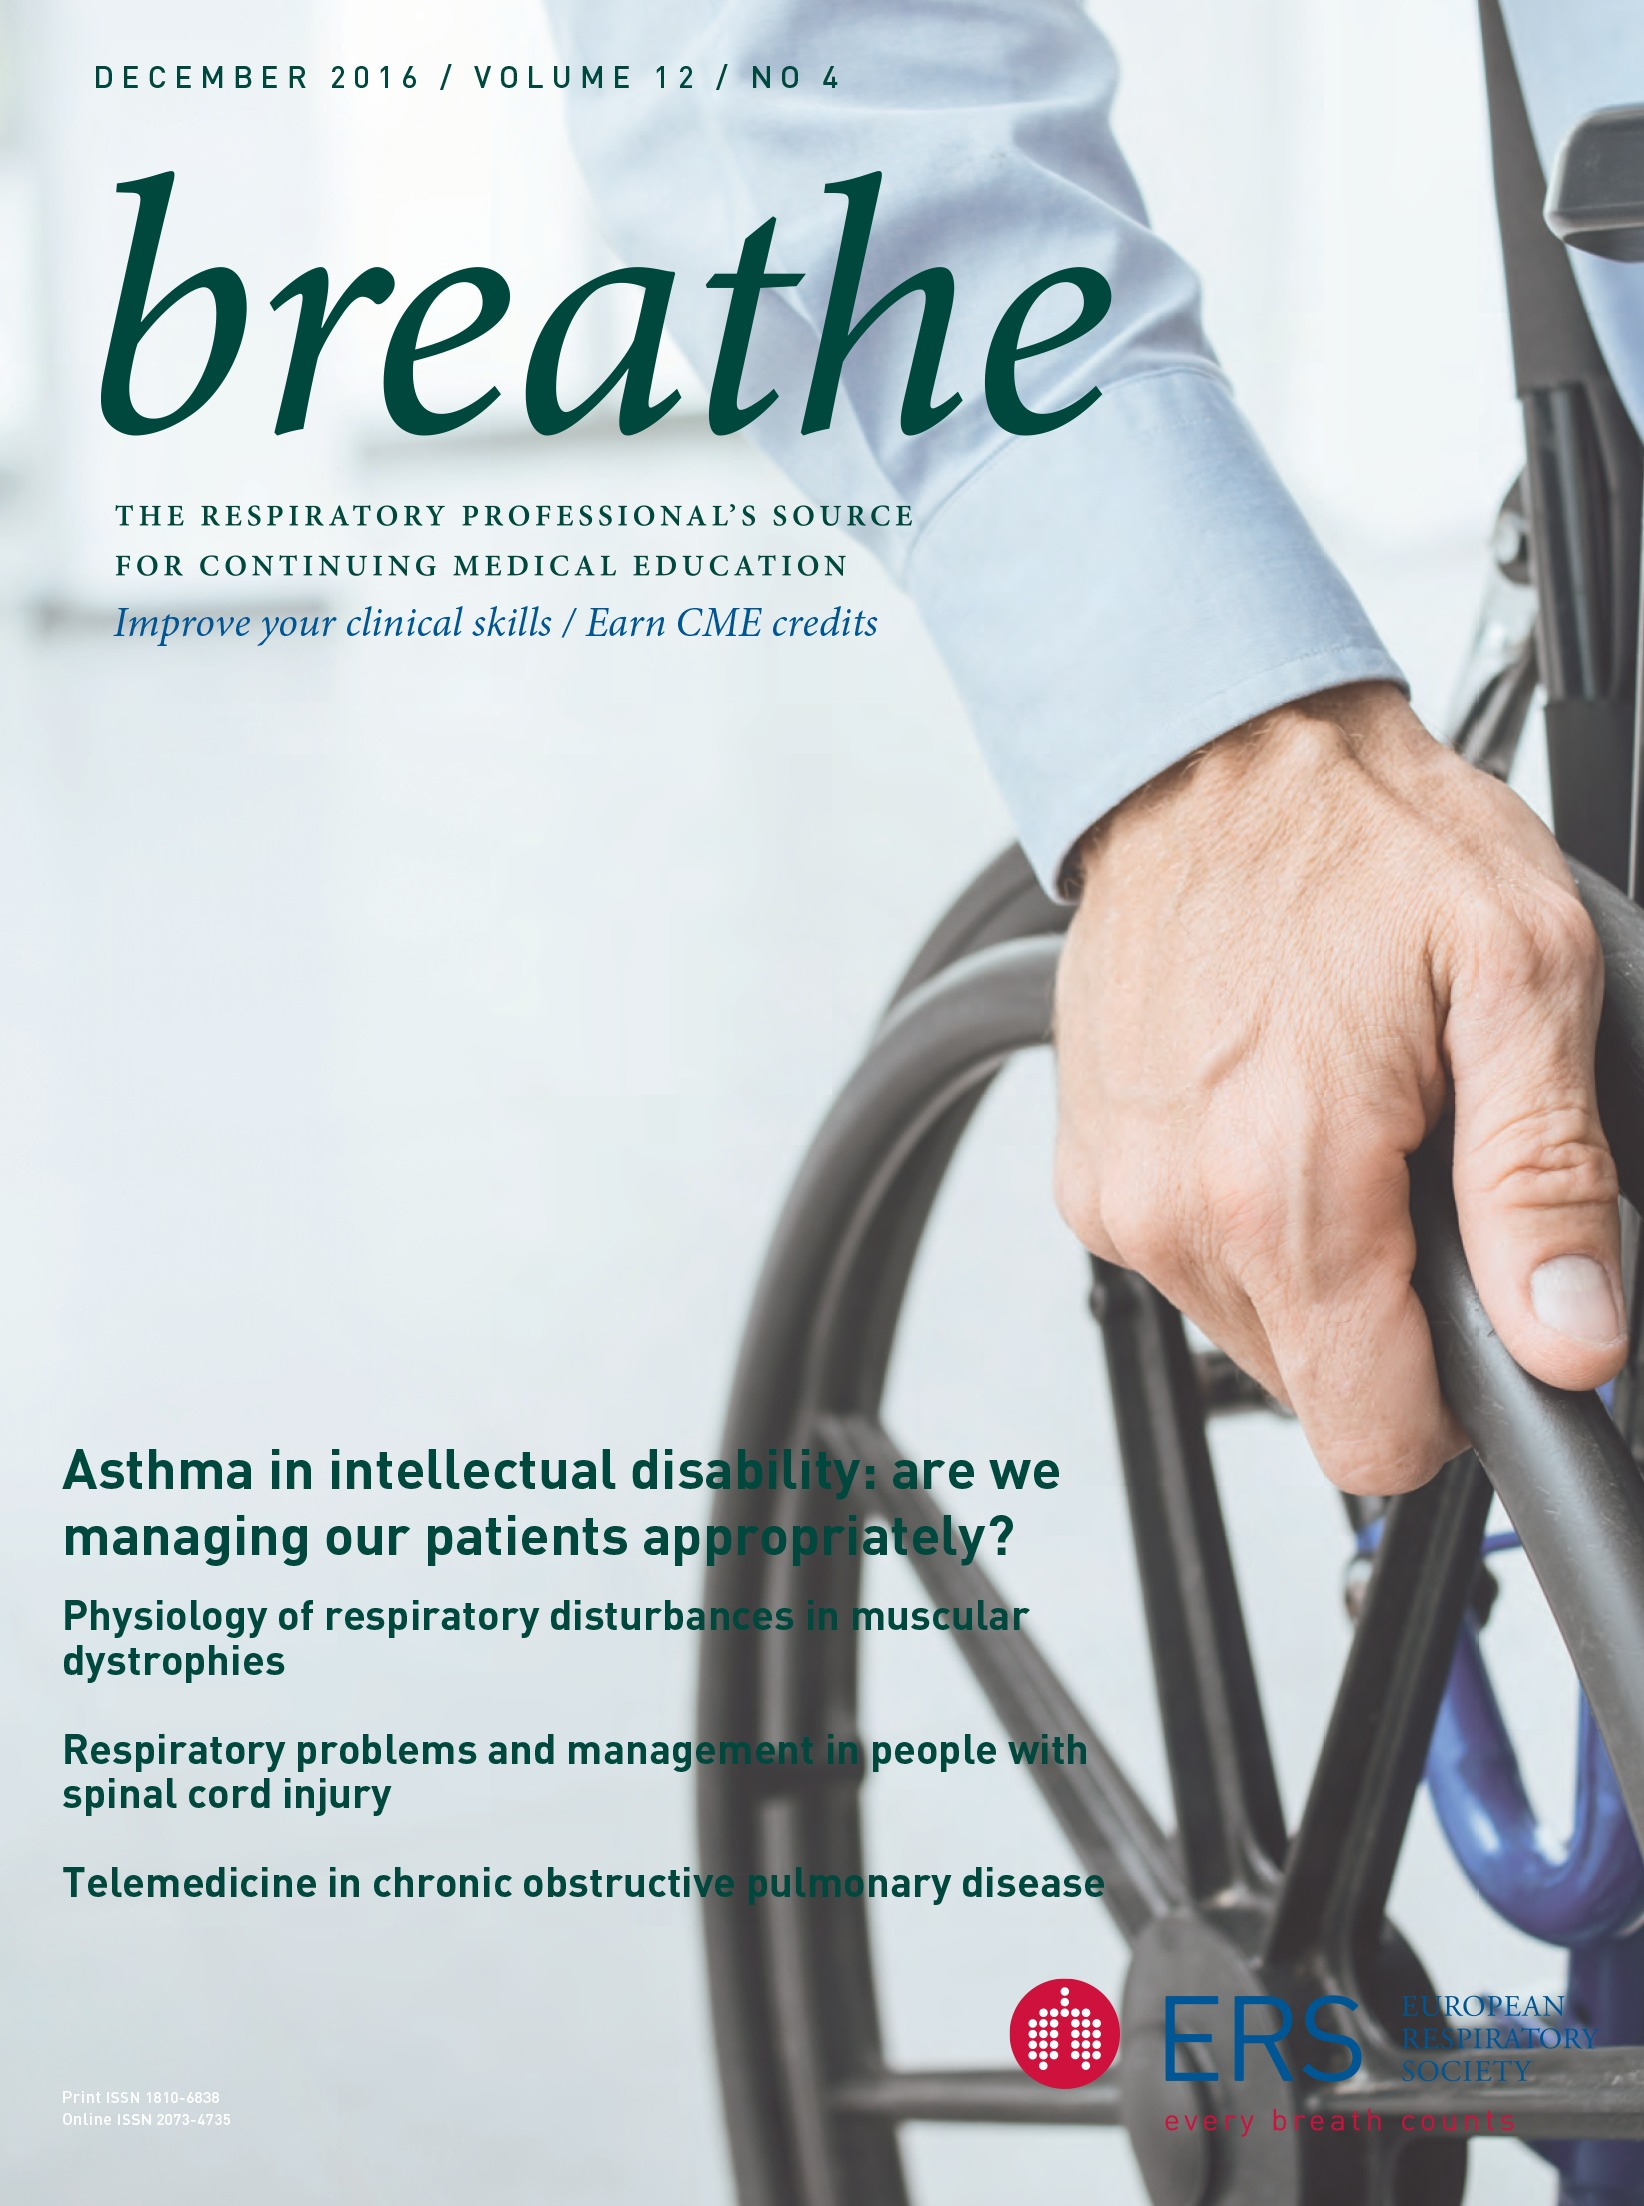 Respiratory problems and management in people with spinal